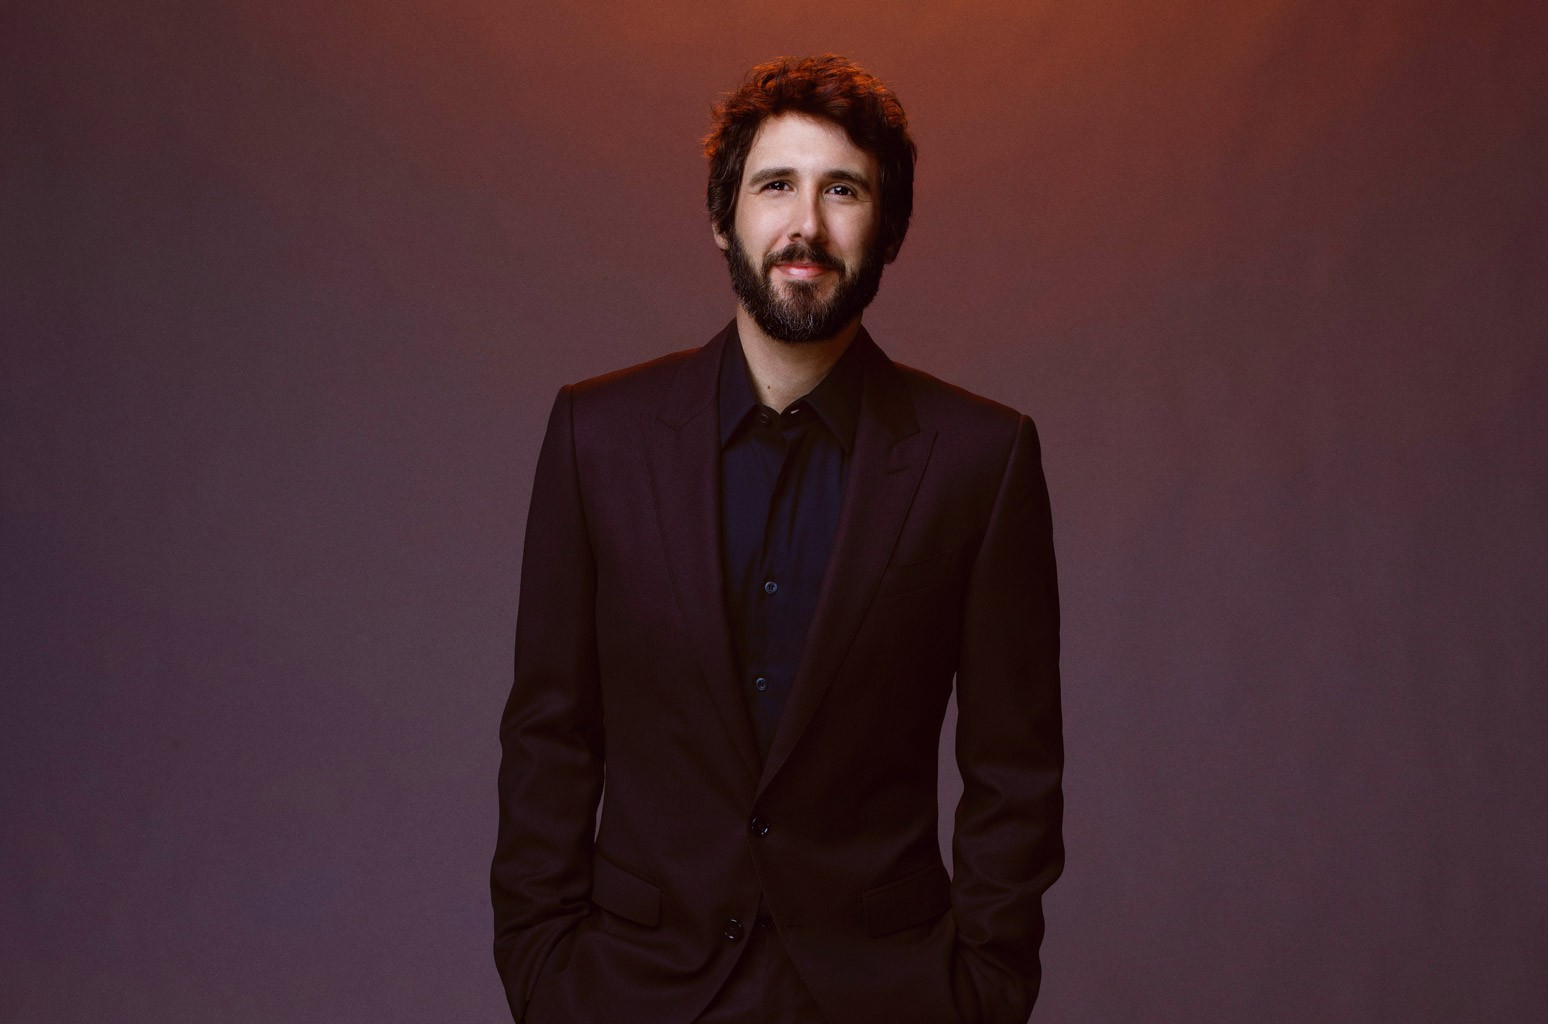 Josh Groban on Finding 'New Meaning' in Classic Songs for His Quarantine-Recorded 'Harmony' Album